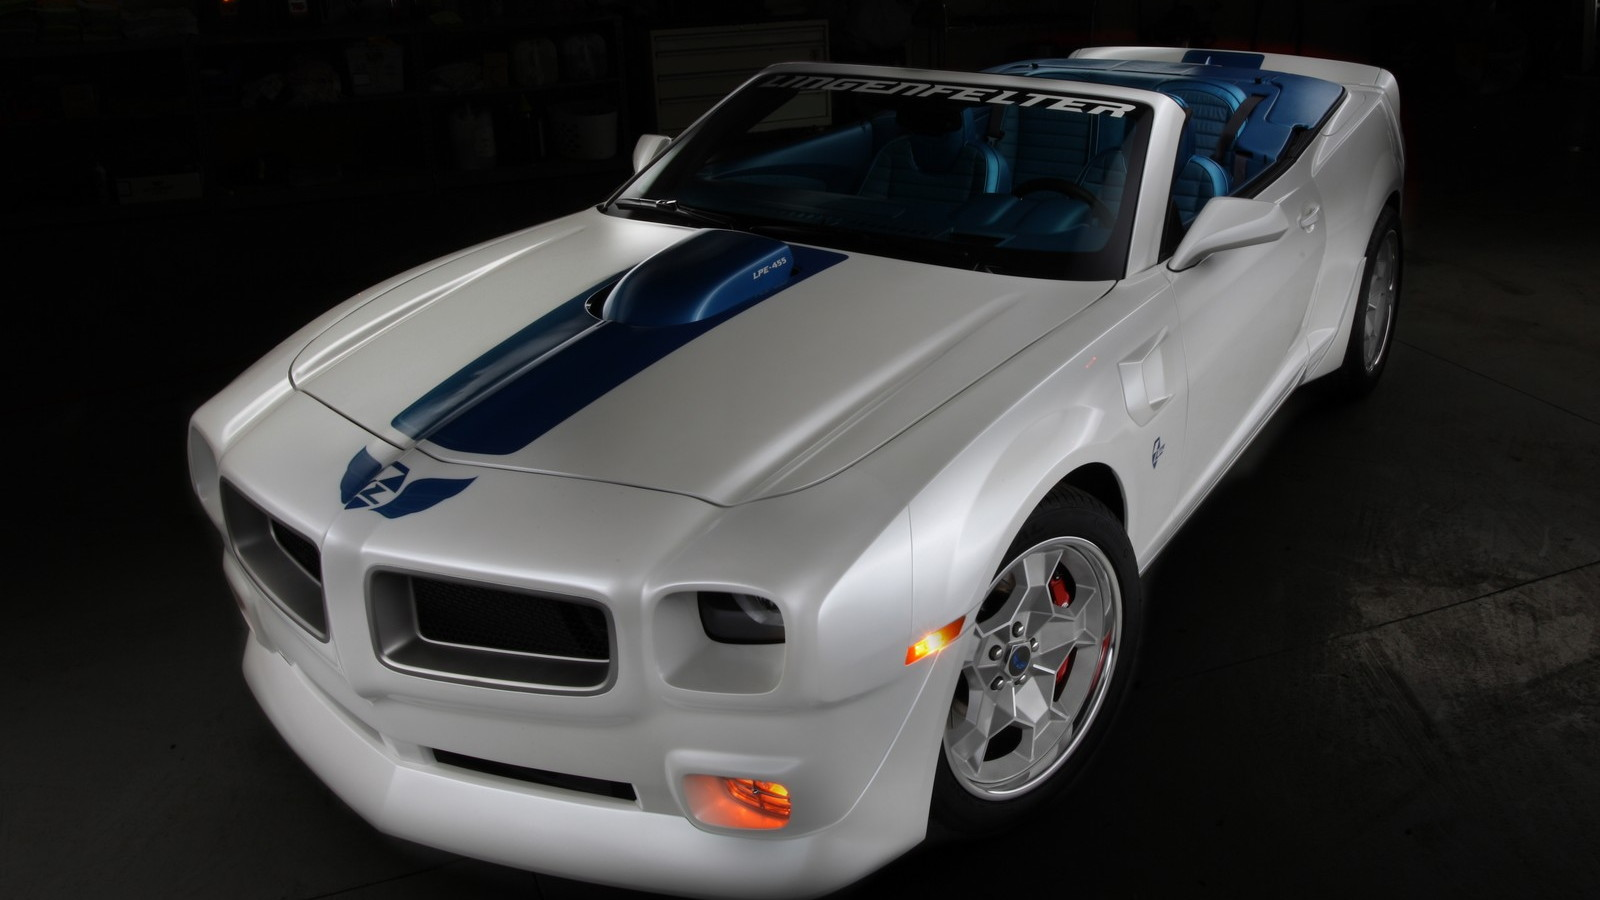 Production-spec Lingenfelter LTA Convertible based on the Chevrolet Camaro